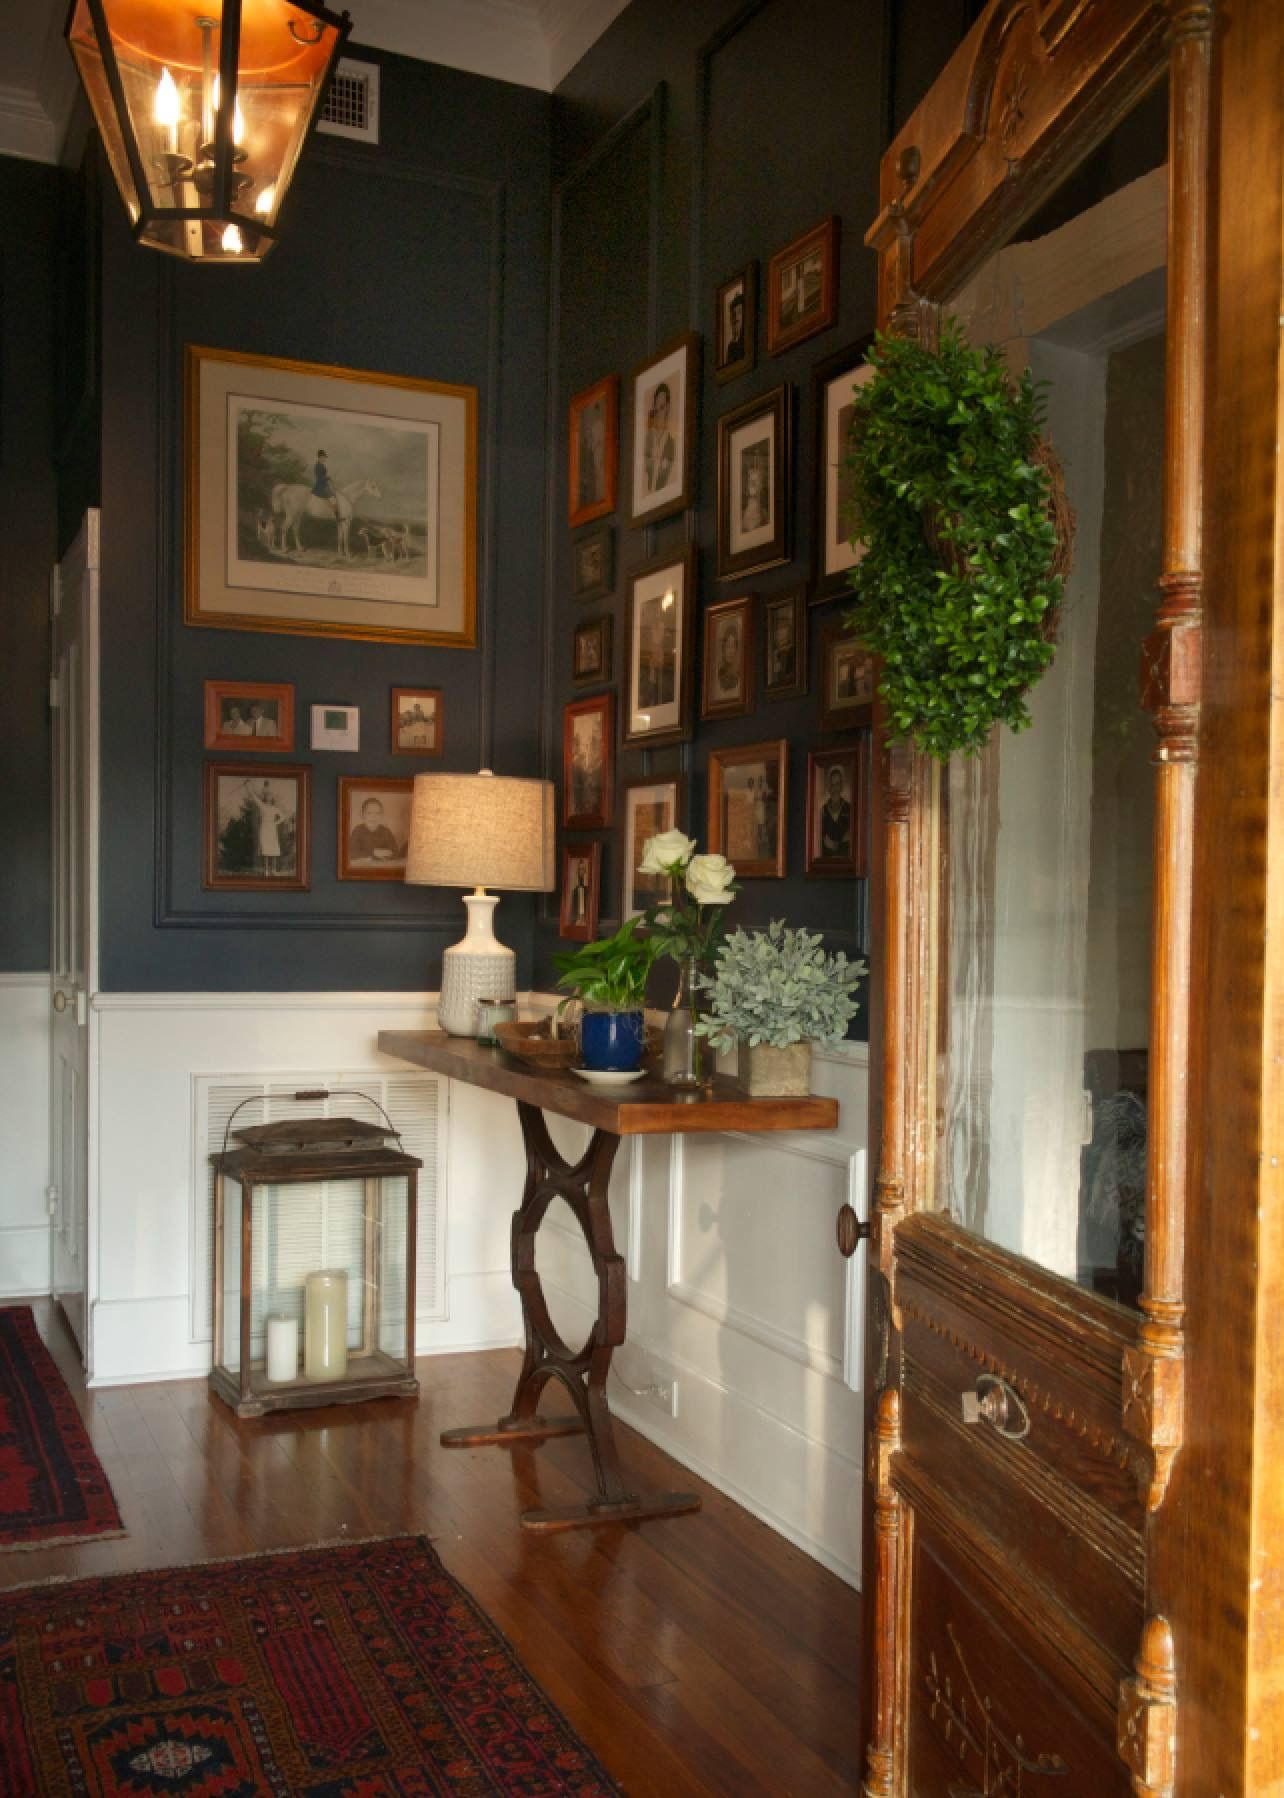 From HGTV Home Town I Like The Boxed Wainscoting On The